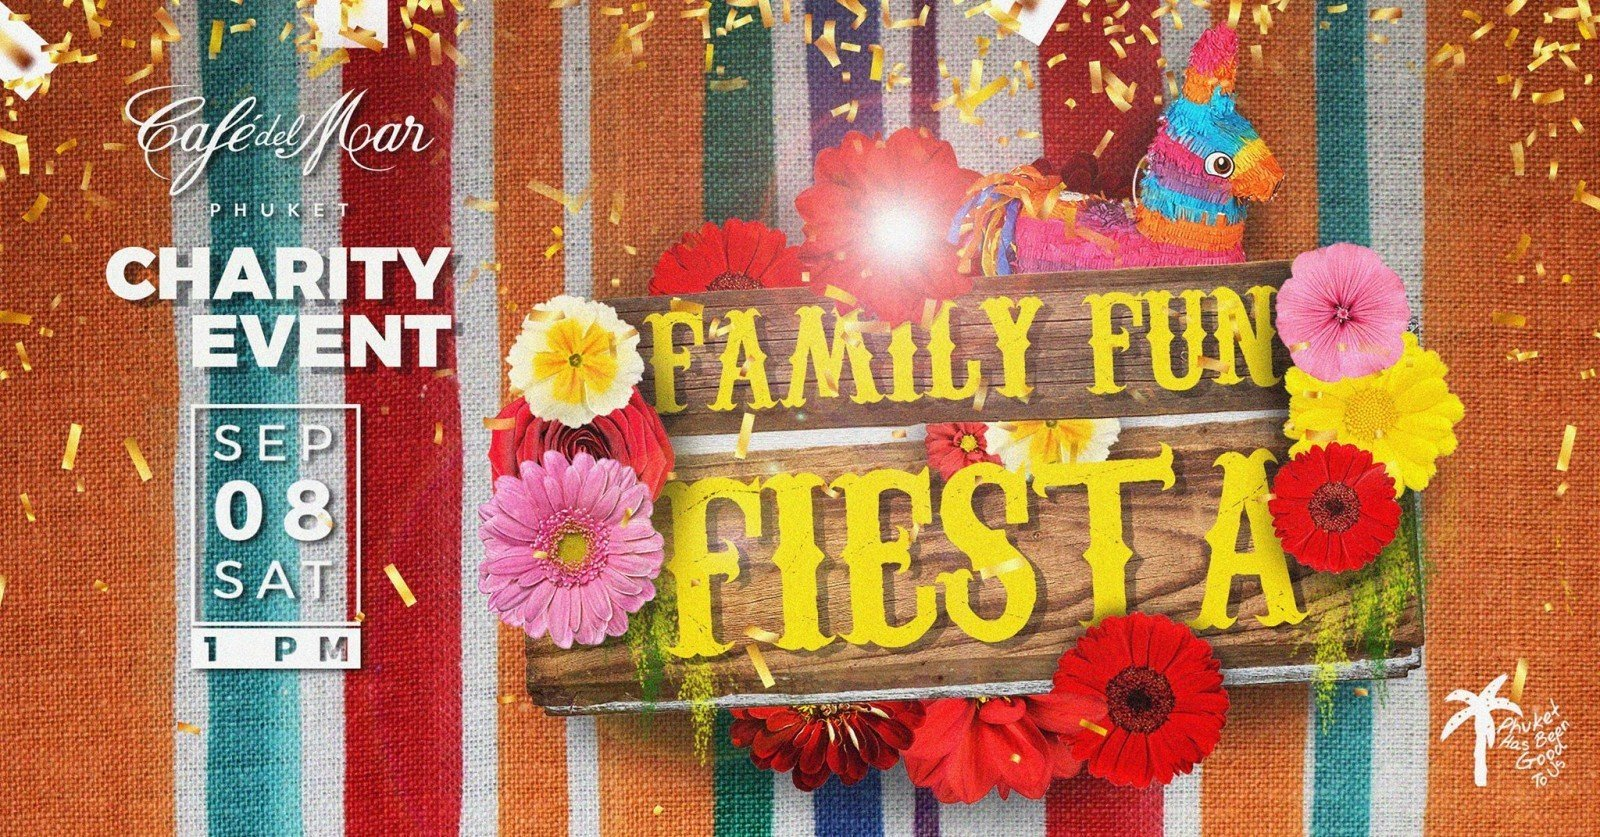 Cindy Sirinya Bishop to attend Café del Mar Family Fun Fiesta charity event | The Thaiger